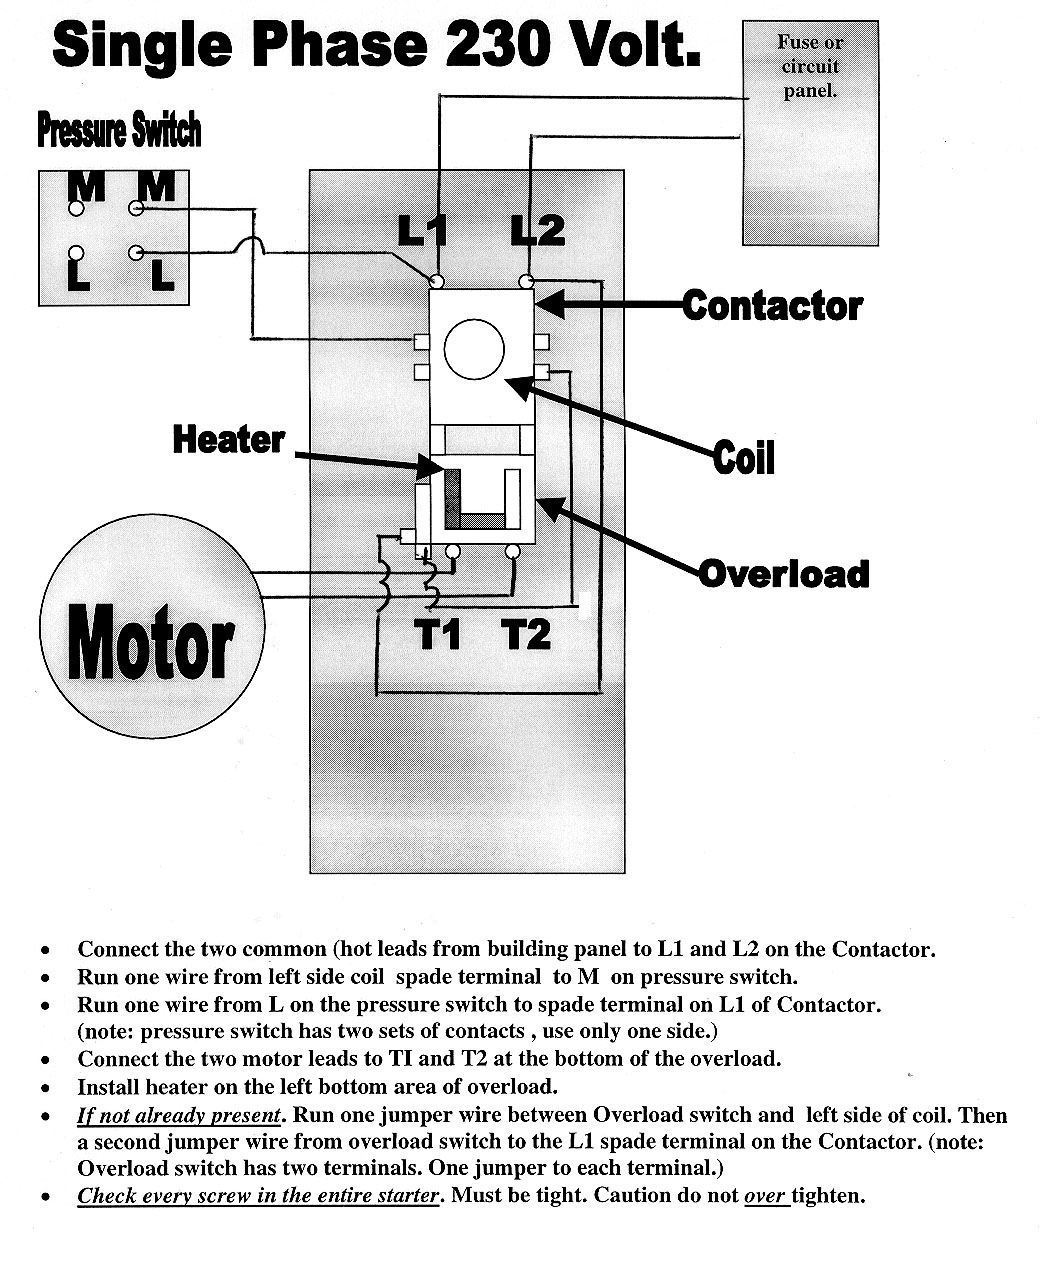 3 phase electric motor starter wiring diagram Collection-Fancy Electric Motor Wiring Diagram Single Phase 47 About Remodel With Three Weg 3 For Motors 17-m